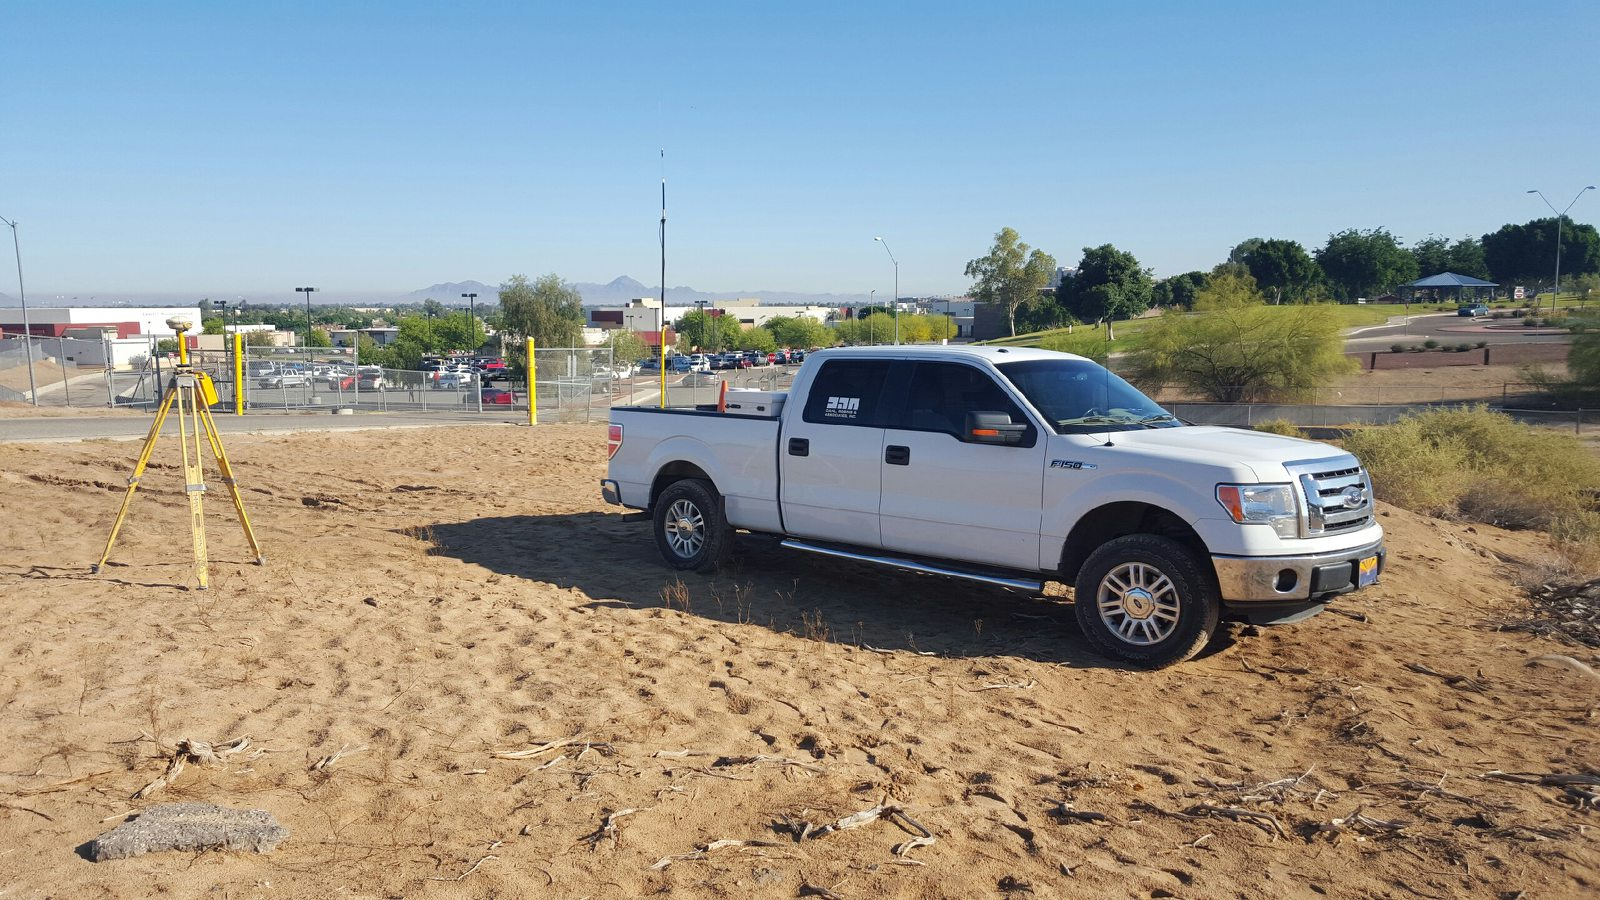 Surveyors begin site work at the location of the new Vista High School and District Office site